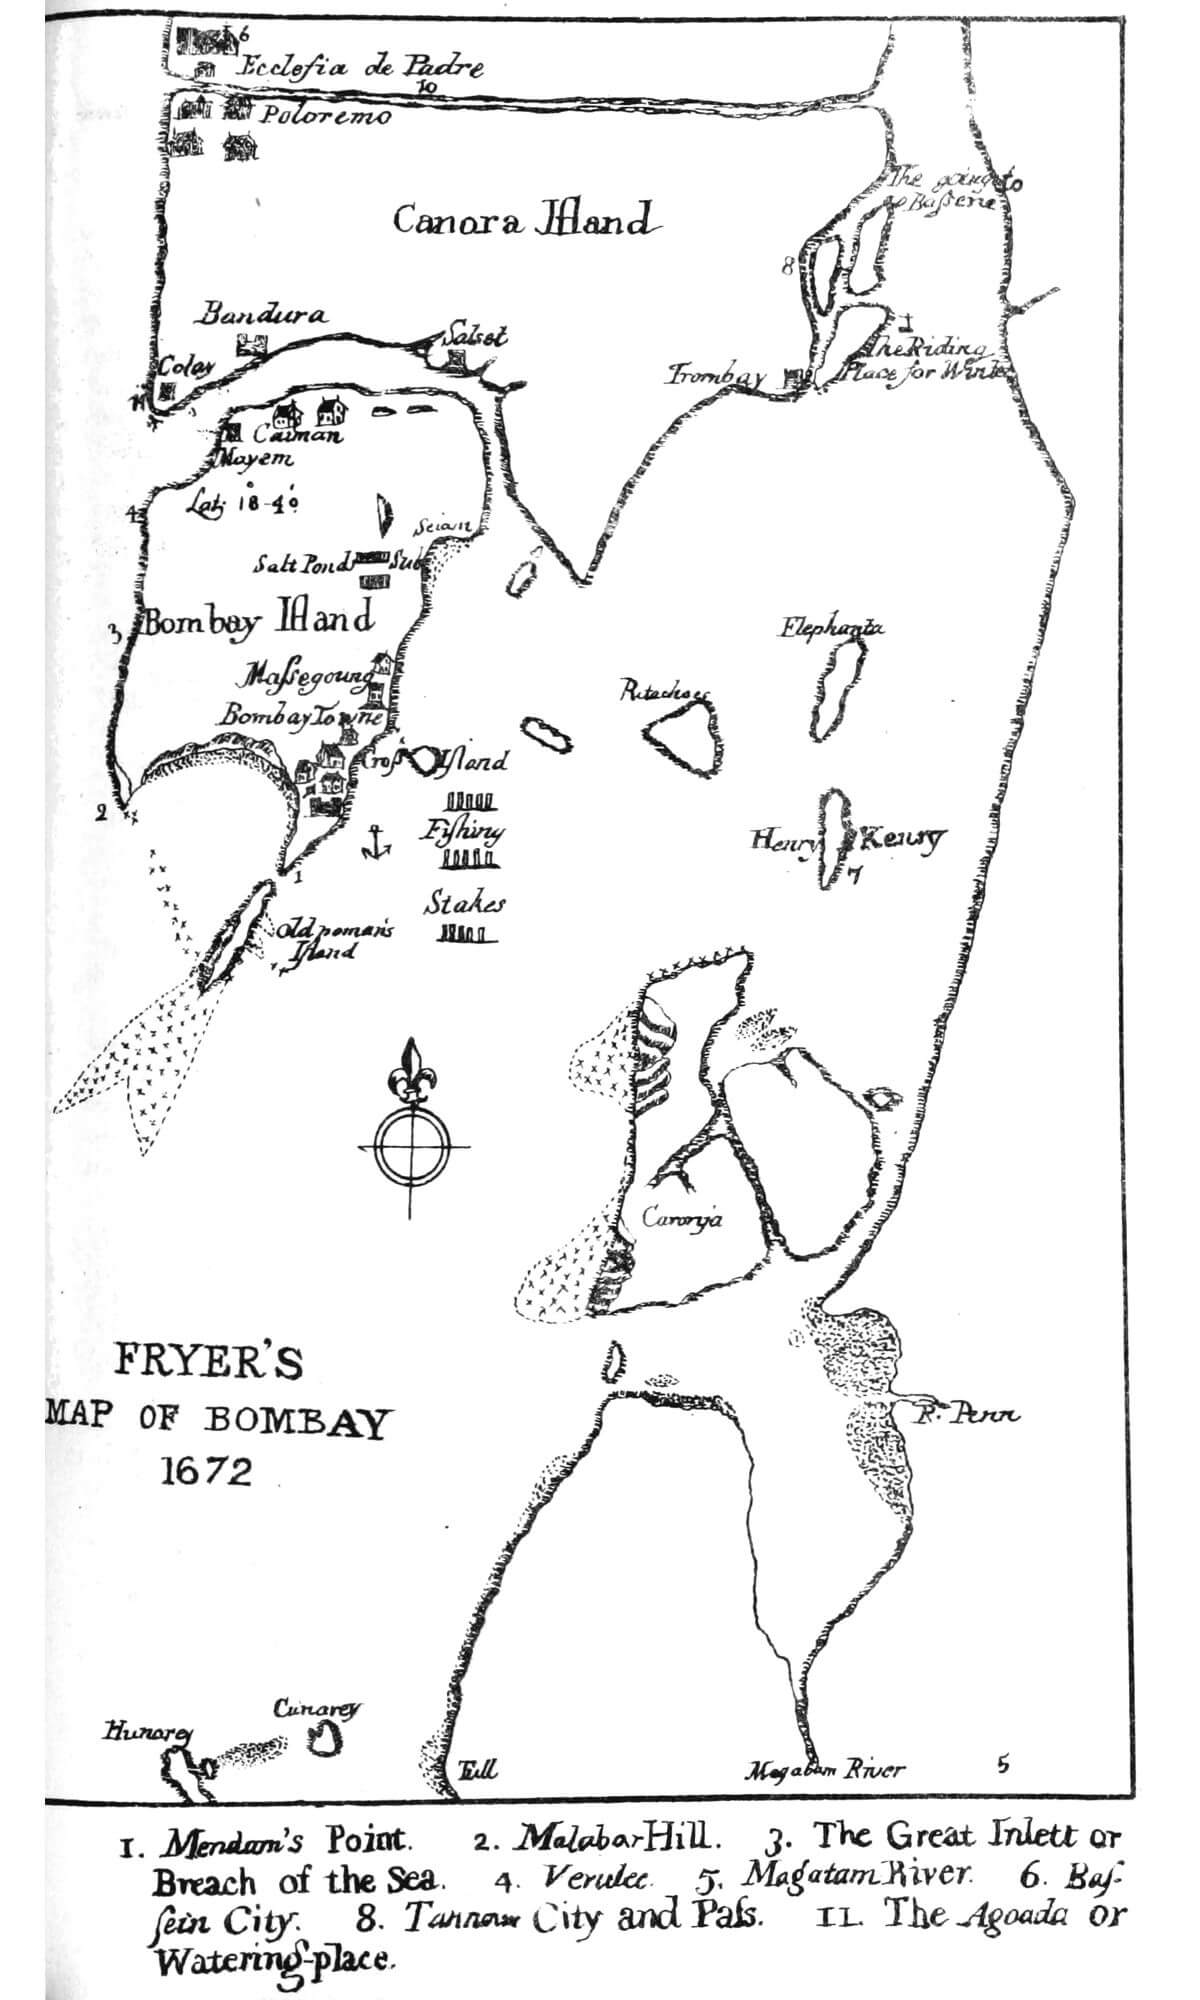 Map of Bombay in 1672